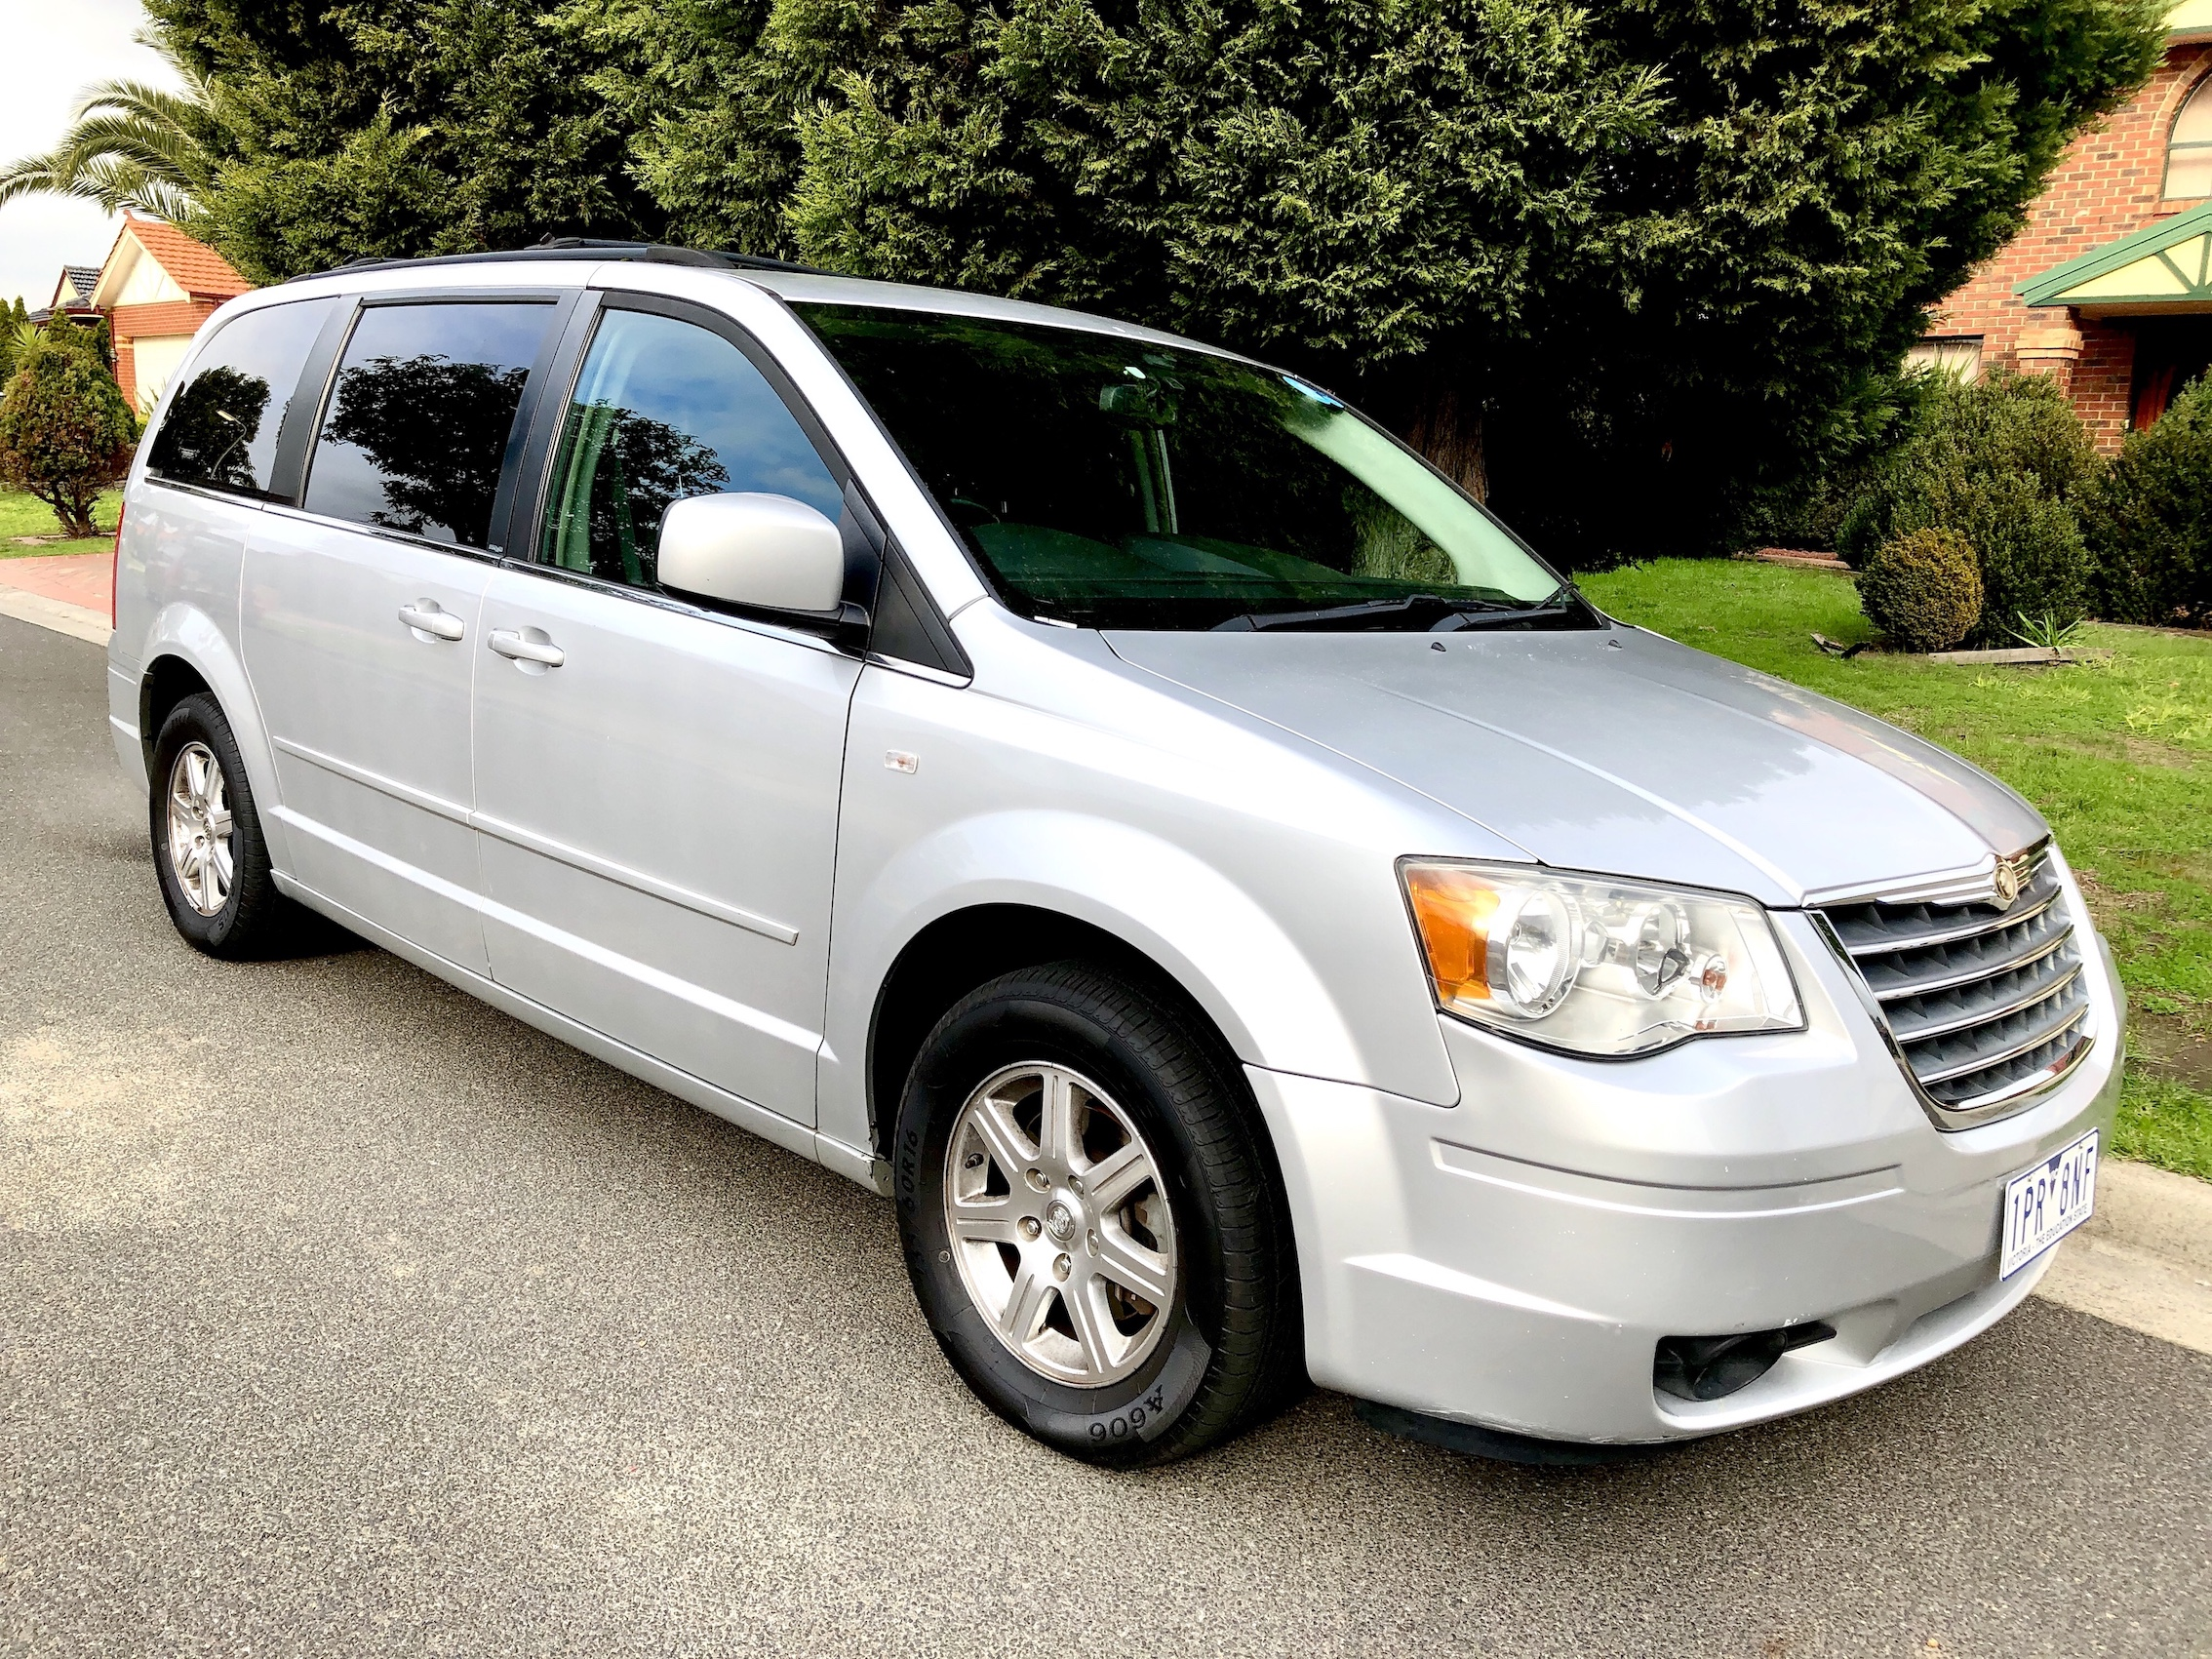 Picture of Michael's 2008 Chrysler Voyager